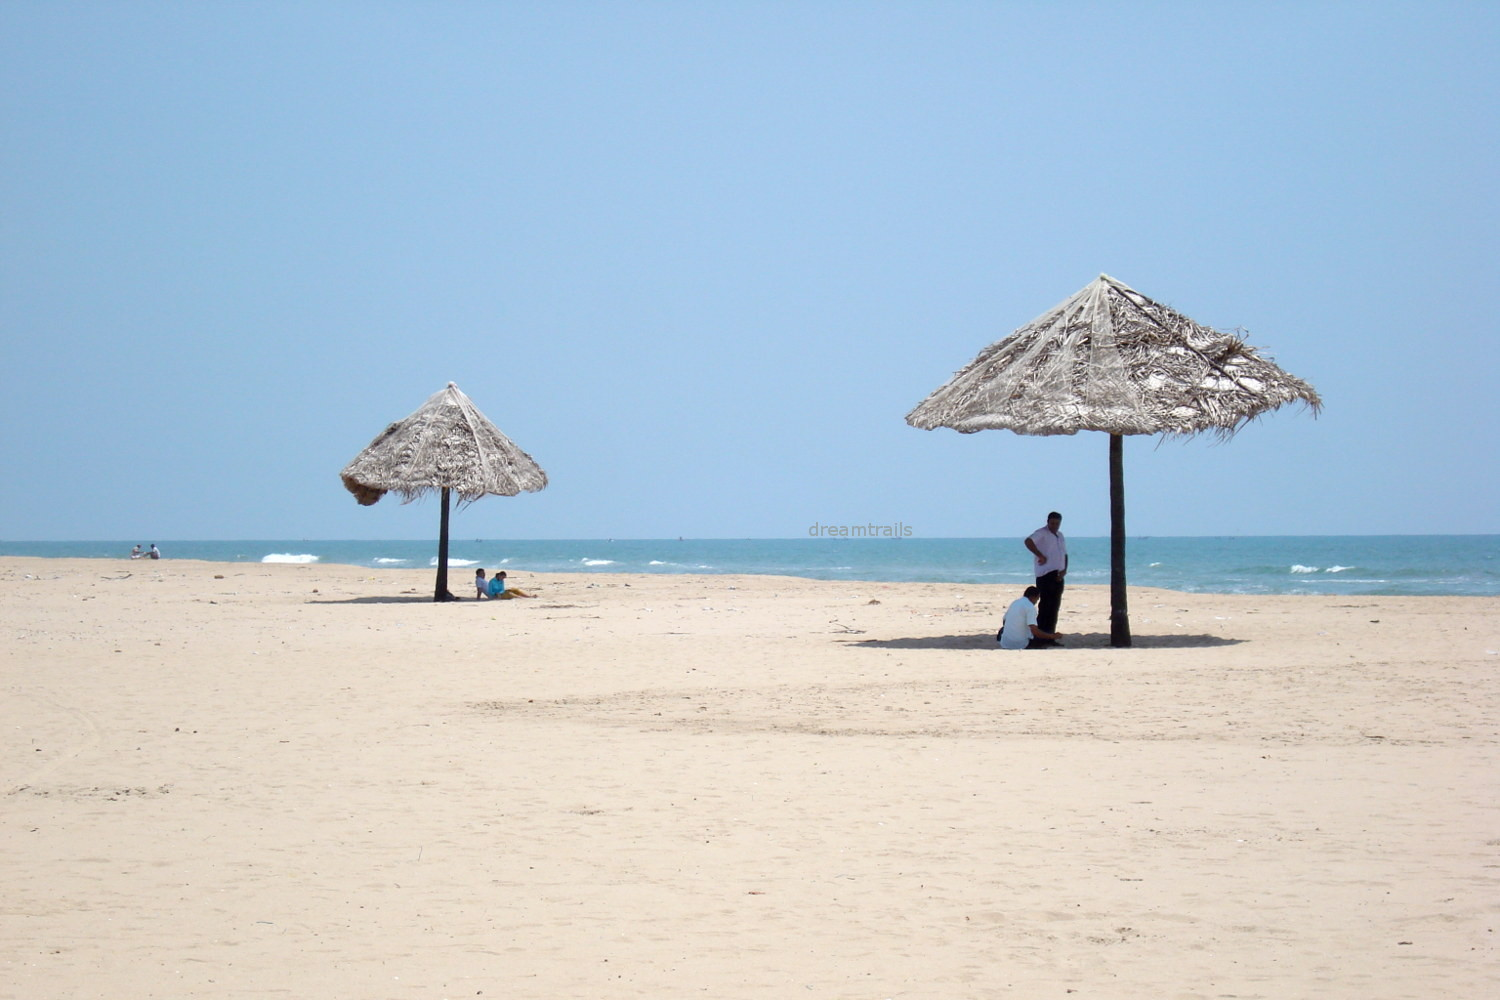 Paradise Beach Paradise On Earth At Pondicherry Dreamtrails